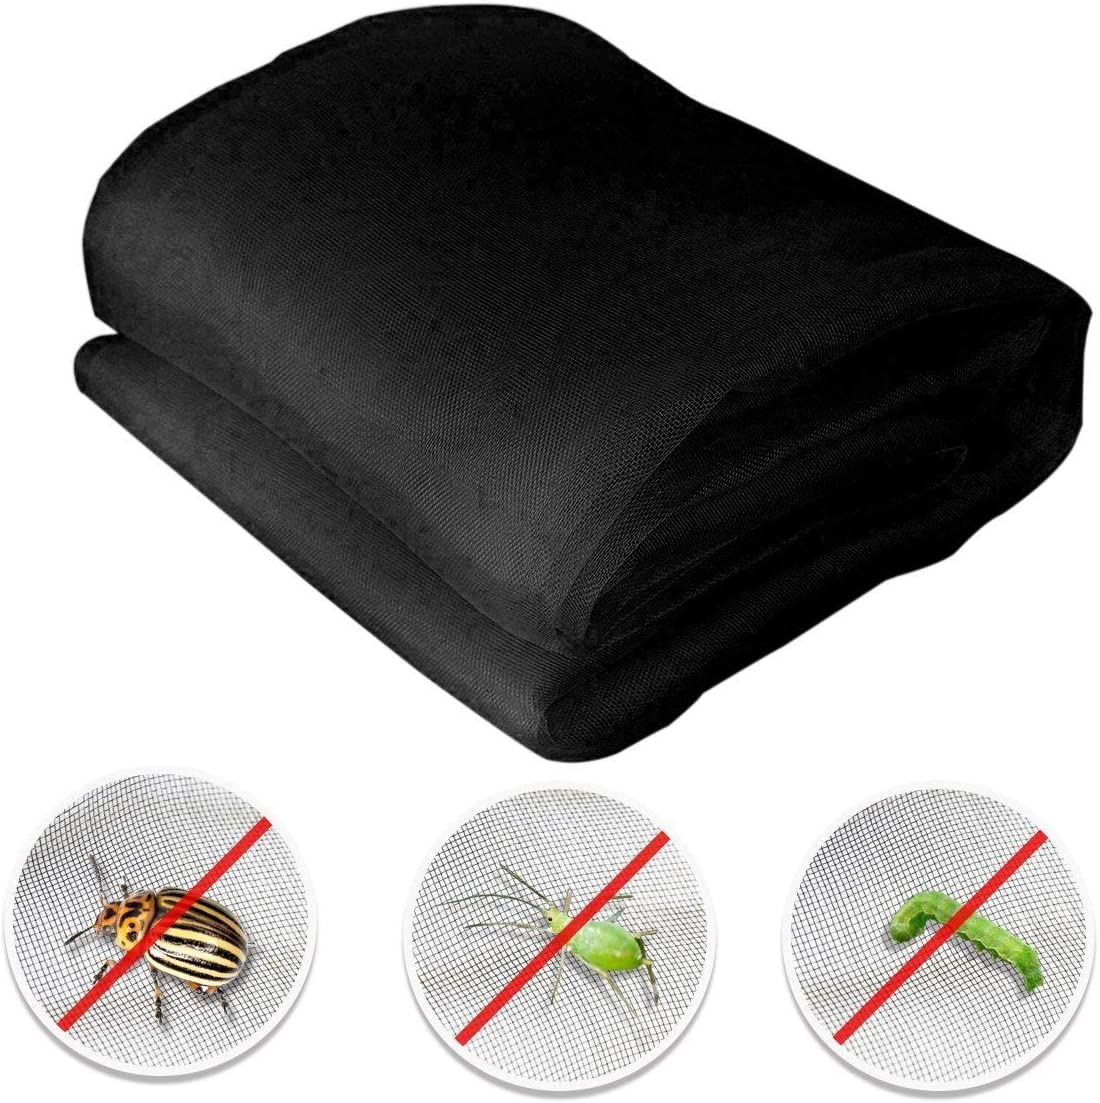 Agfabric 8'x12' Bug Net Insect Bird Netting, Garden Netting Protect Plants Fruits Flowers Against Bugs Birds & Squirrels, Black